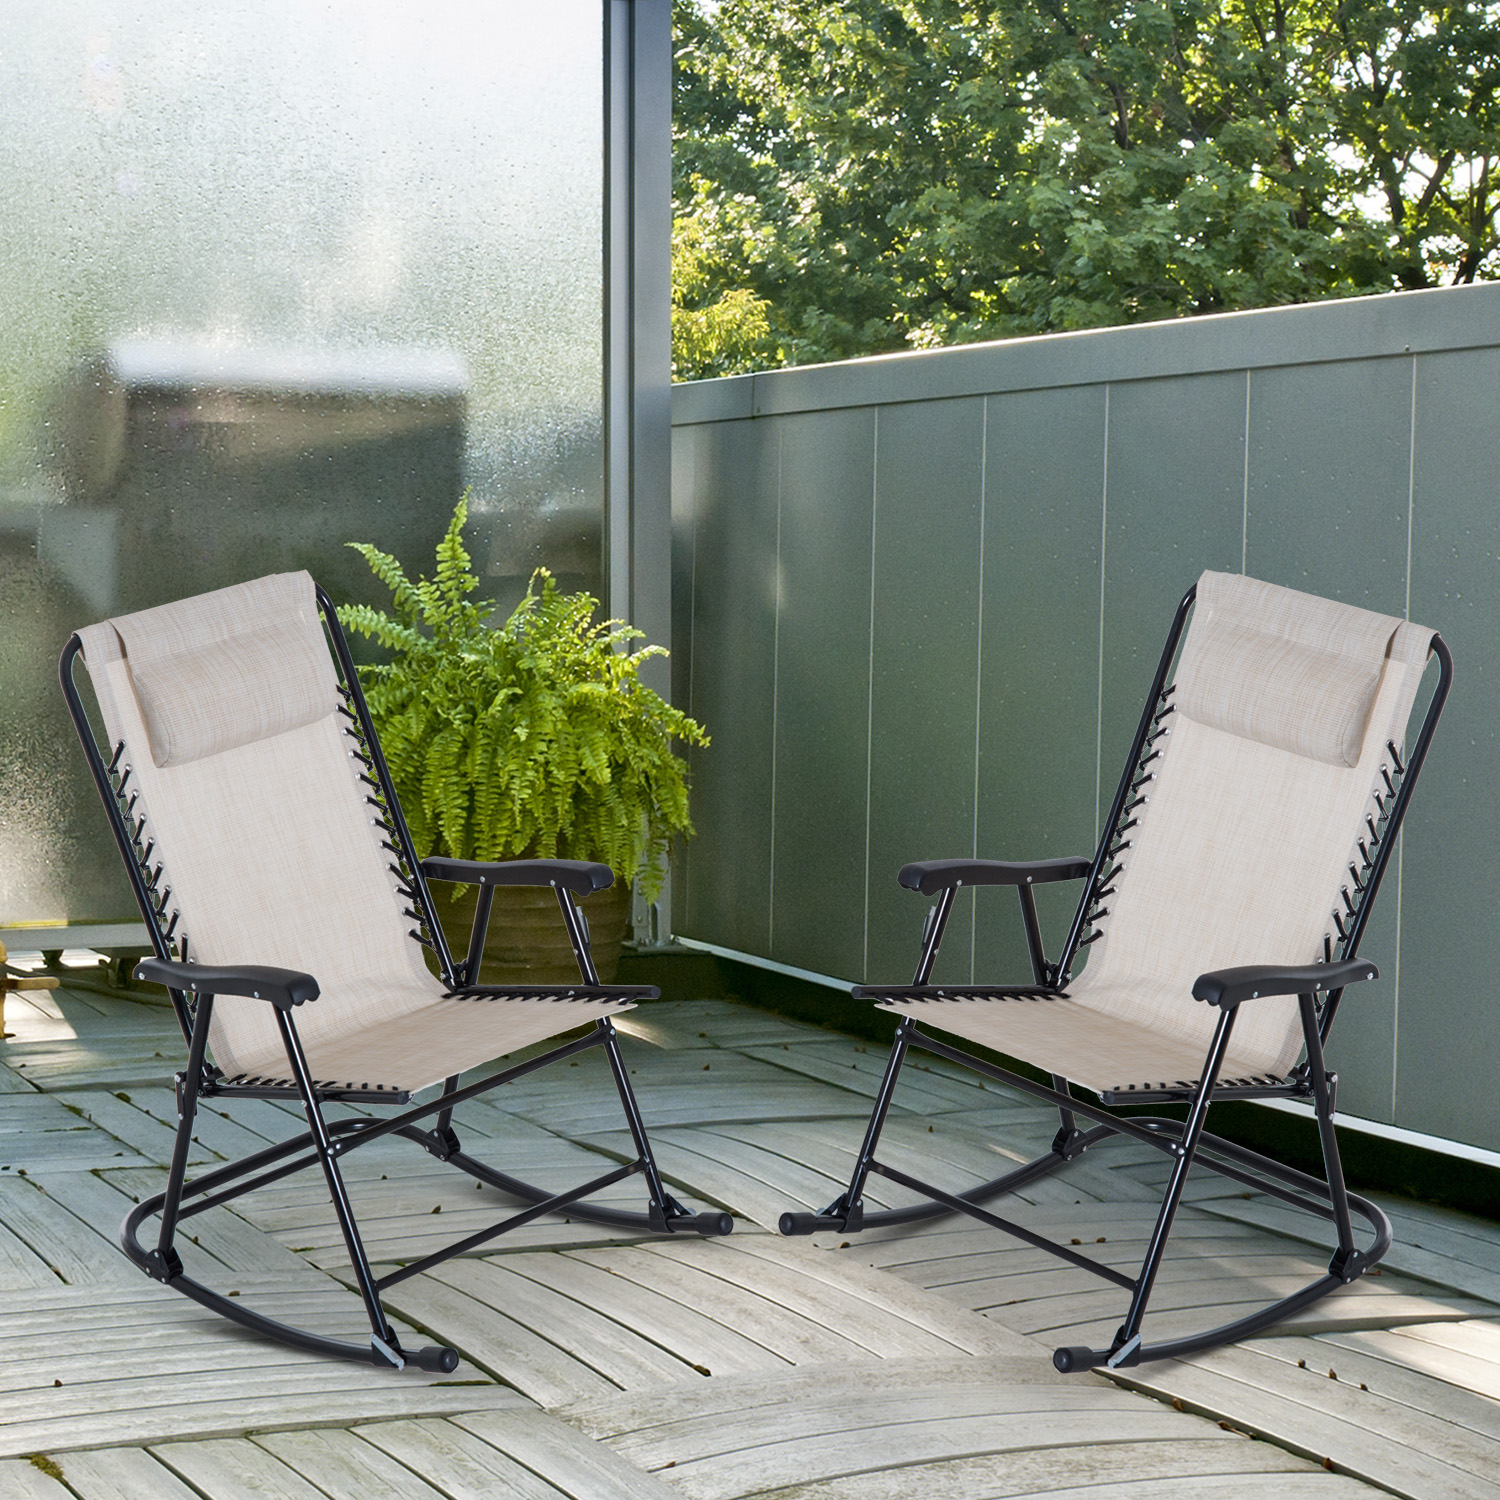 Outdoor Rocking Chair Set Details About Outsunny Mesh Outdoor Patio Folding Rocking Chair Set Porch Lawn Furniture